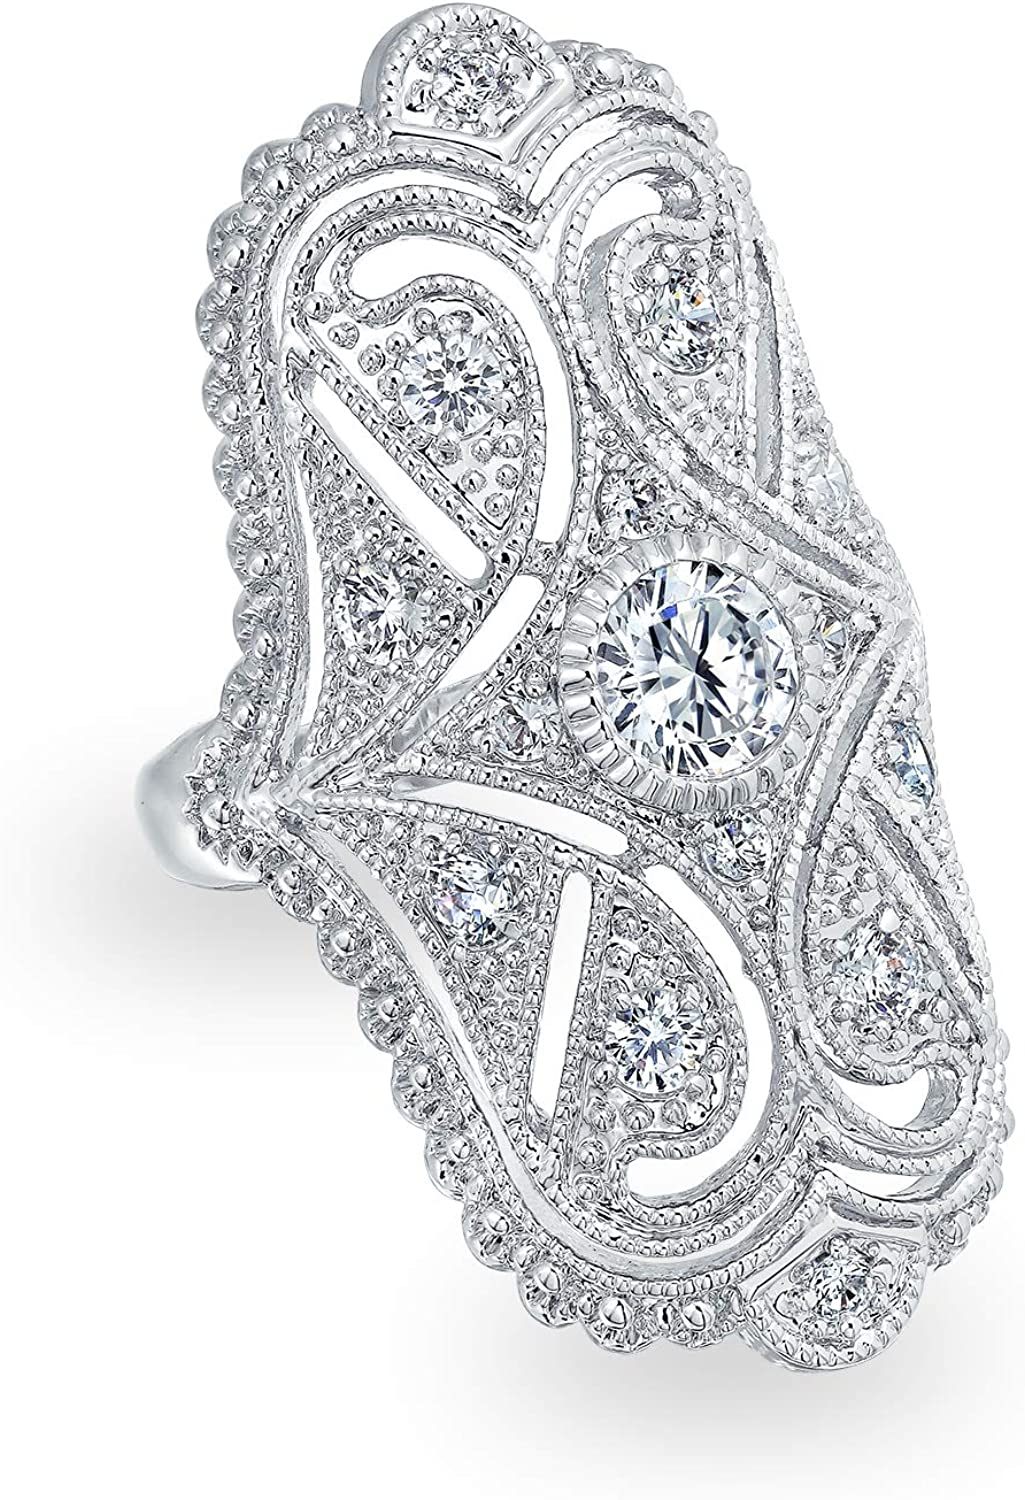 Bling Jewelry Deco Antique Style Filigree Pave CZ Wide Armor Full Finger Fashion Statement Ring Cubic Zirconia Rhodium Plated Brass